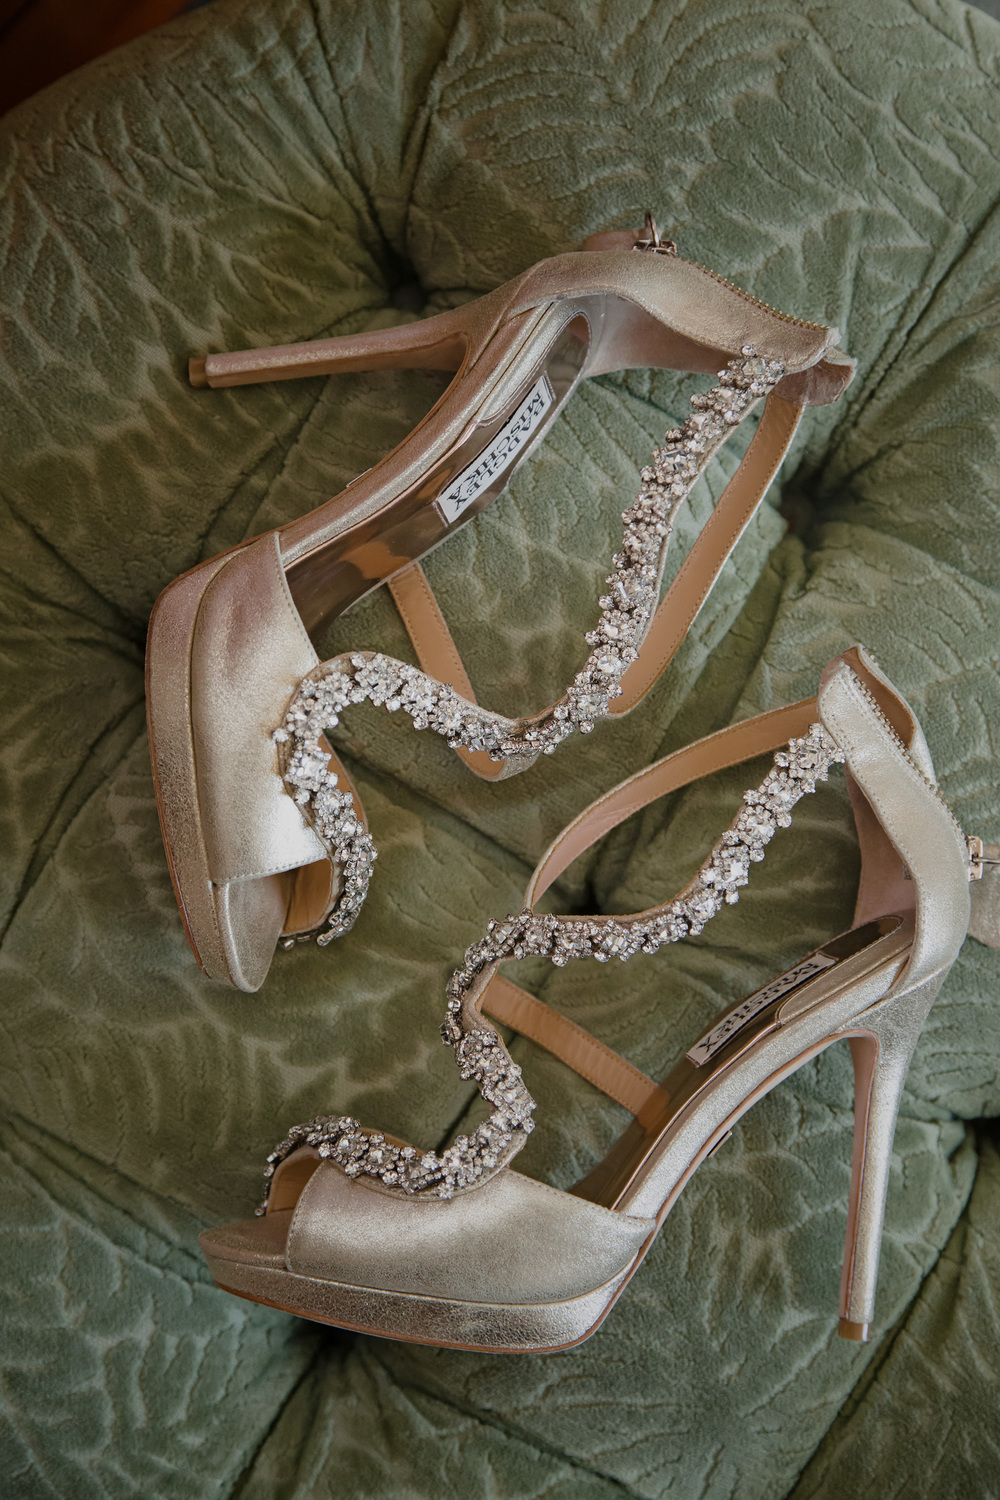 Champagne colored Badgley Mischka wedding shoes with crystal accents.   Vendor Credit:  Las Vegas Wedding Planner Andrea Eppolito | Photo: Adam Frazier Photography | Decor: Naakiti Floral | Beauty: Make Up in the 702